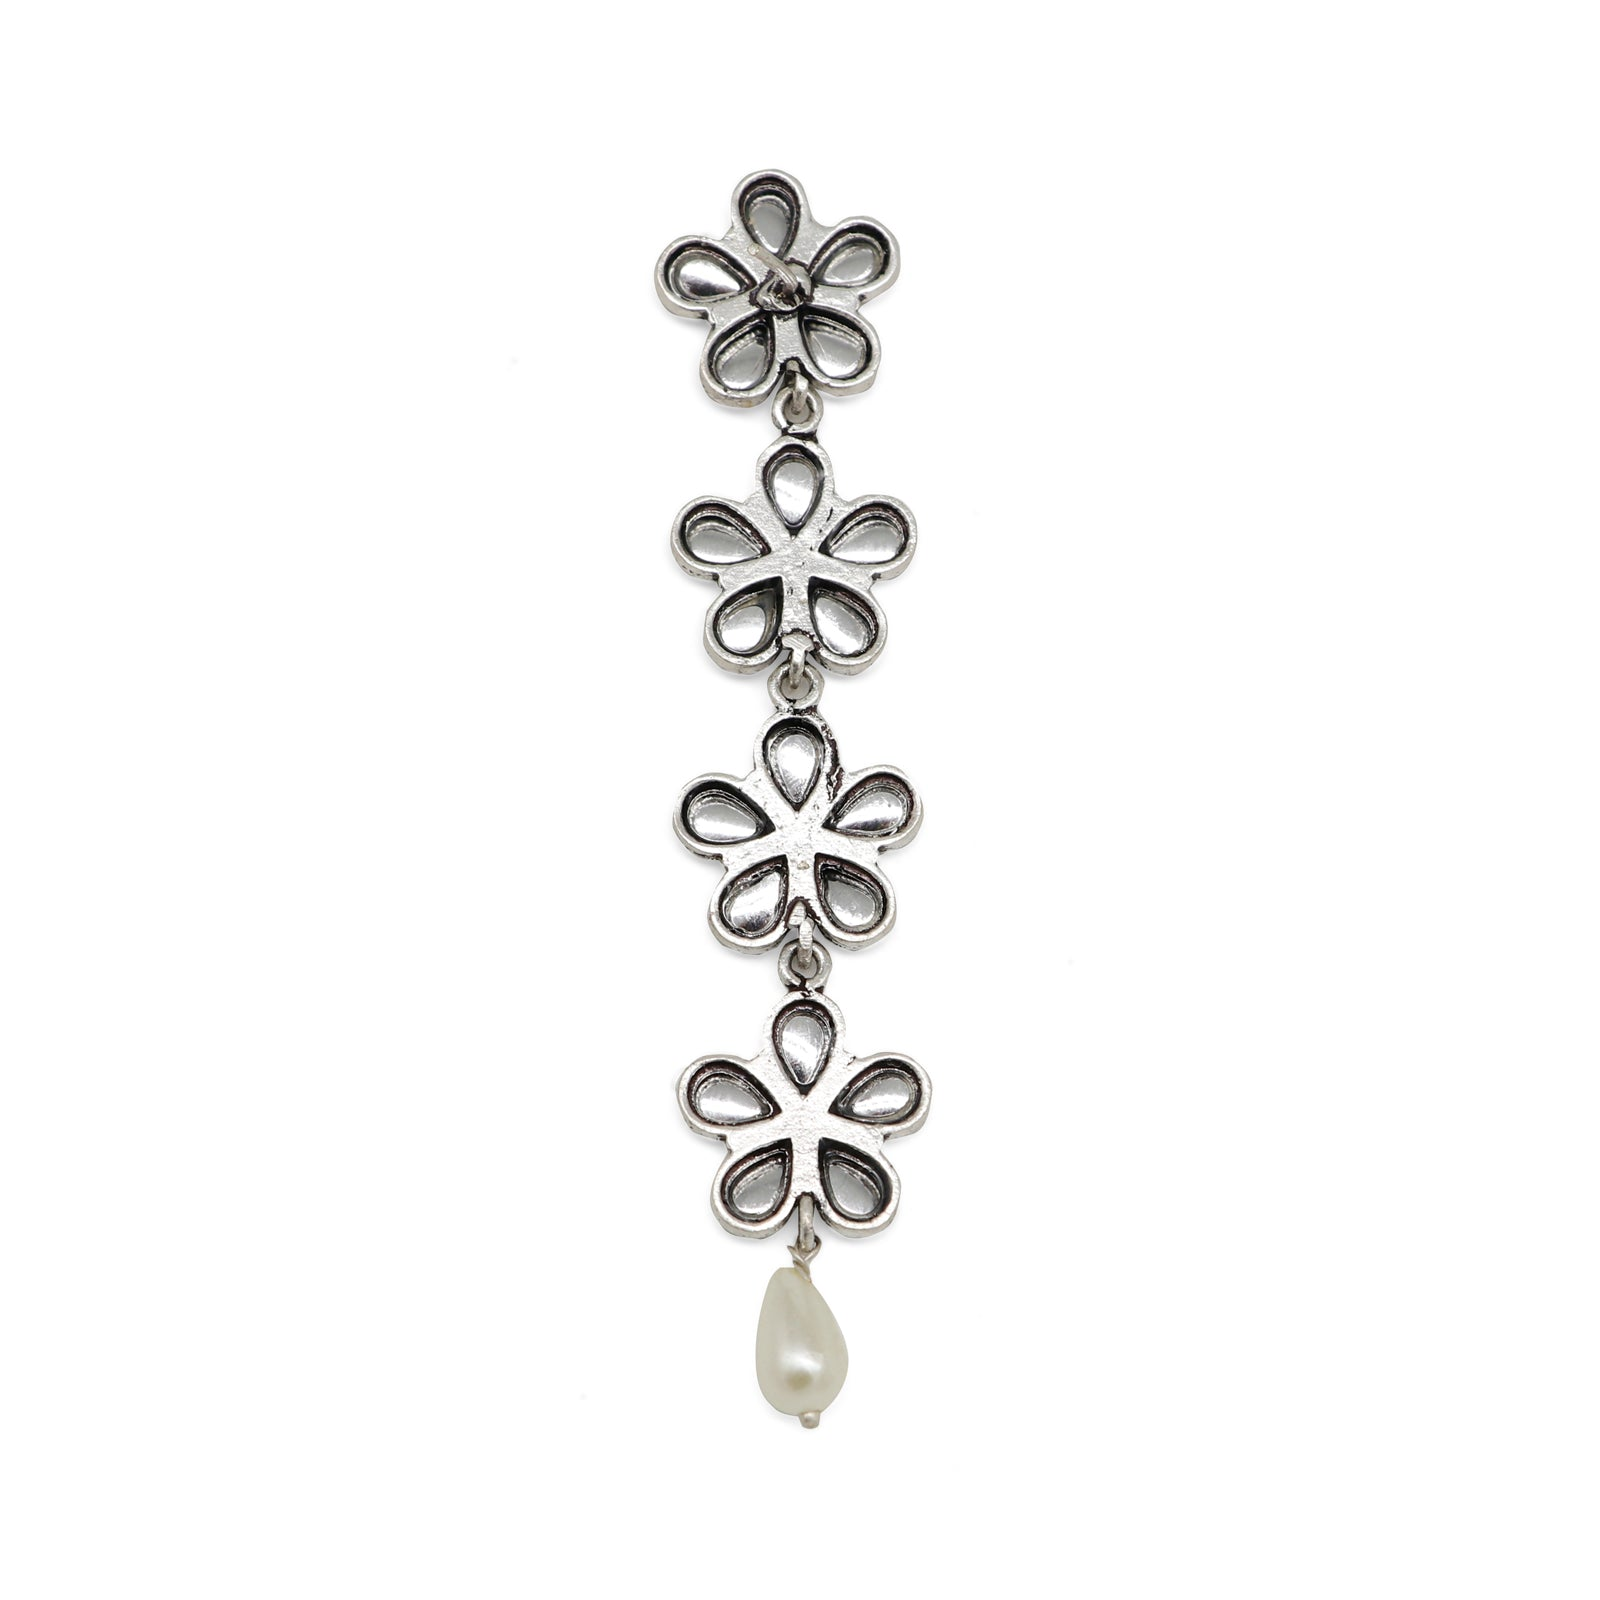 Aathavi Floral Polki Silver Oxidized Earrings - Teejh